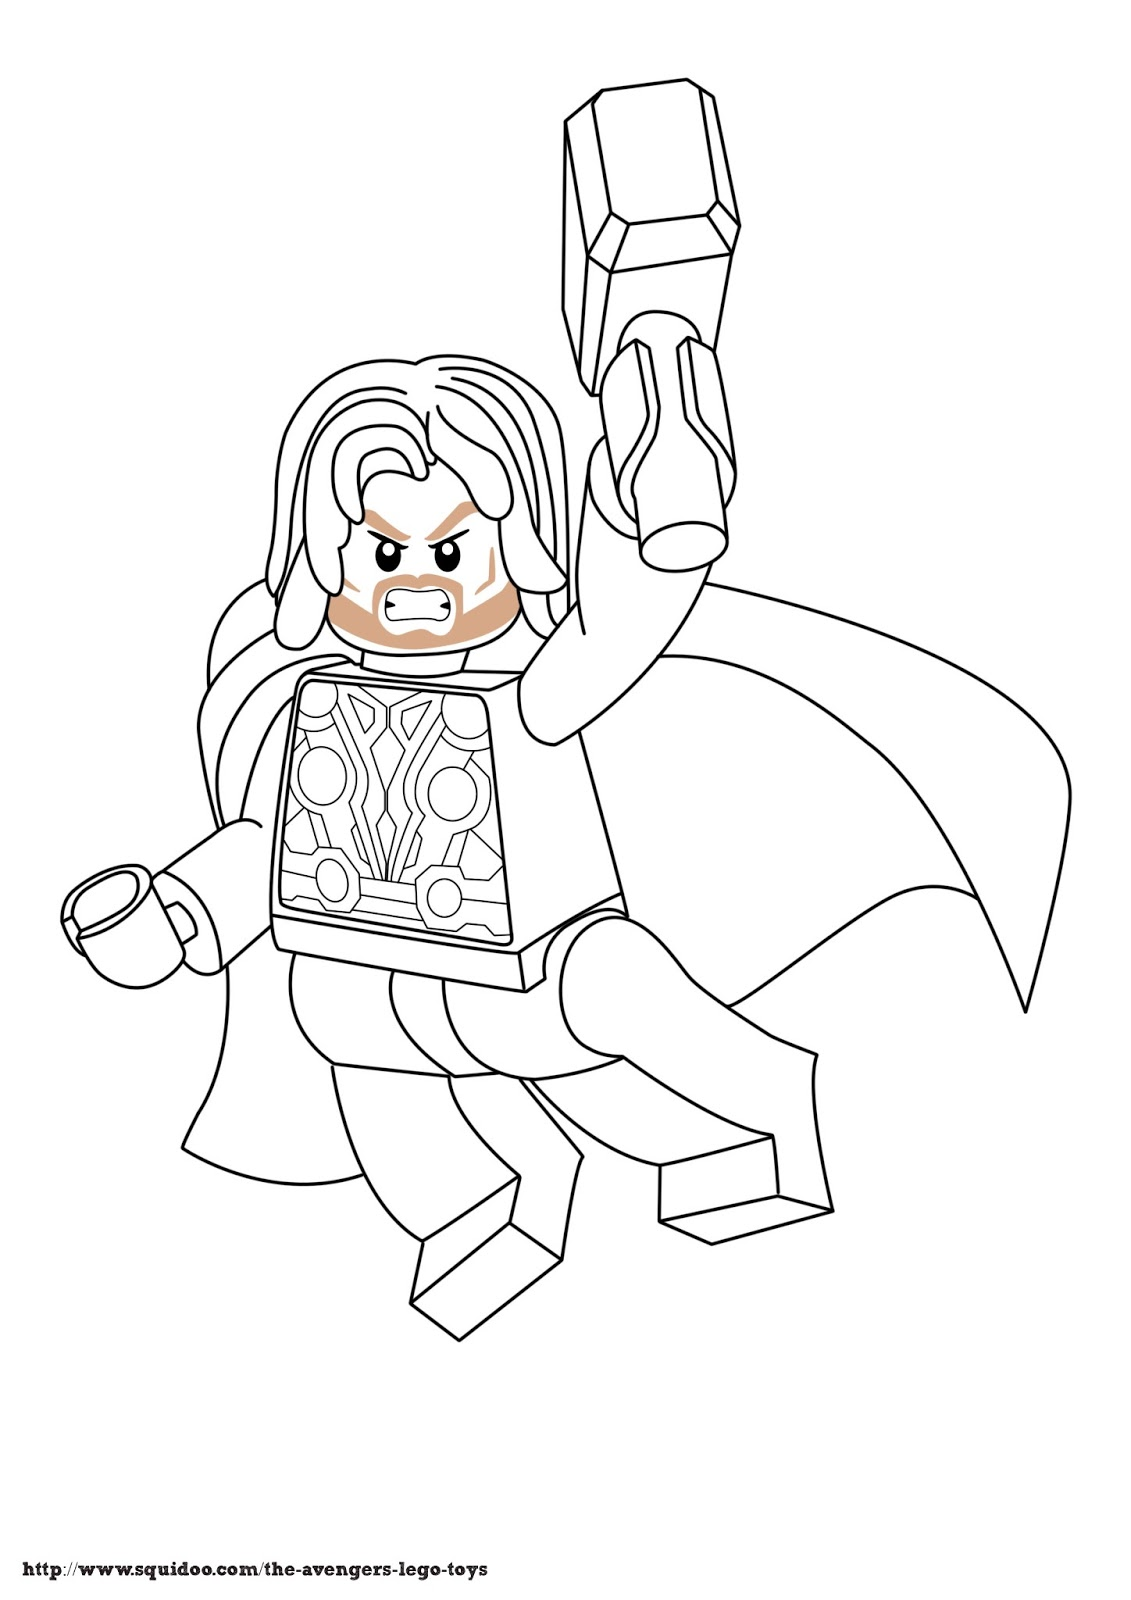 lego avengers coloring pages printable lego avengers coloring pages at getcoloringscom free printable coloring avengers lego pages